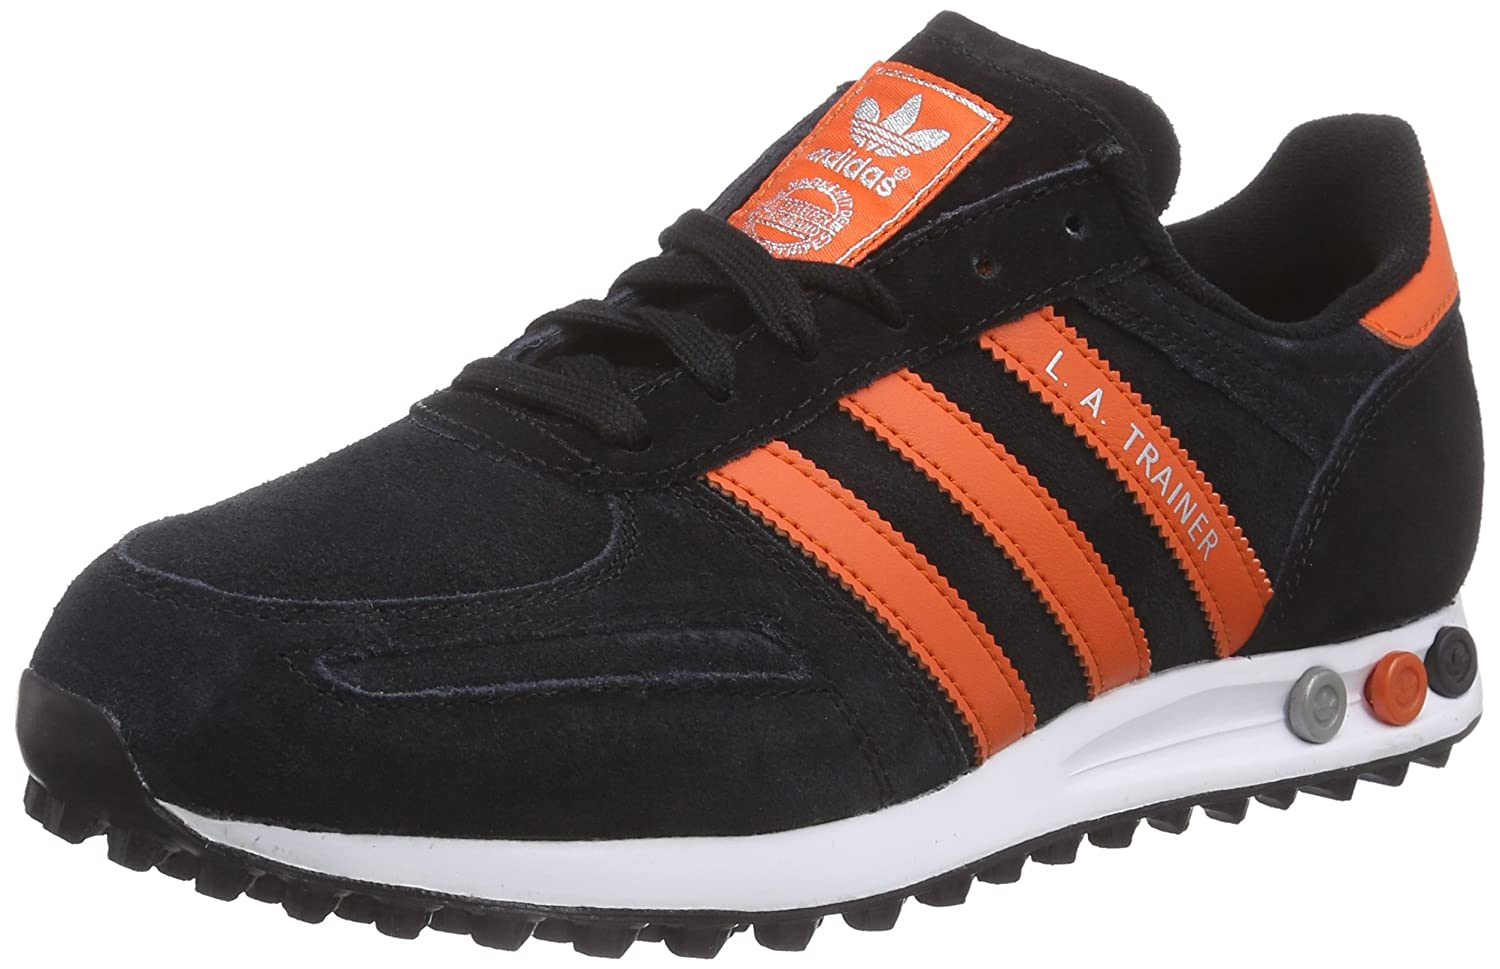 Adidas LA Trainer - Zapatillas para Hombre 42 EU|Core Black/Collegiate Orange/Metallic Silver-sld